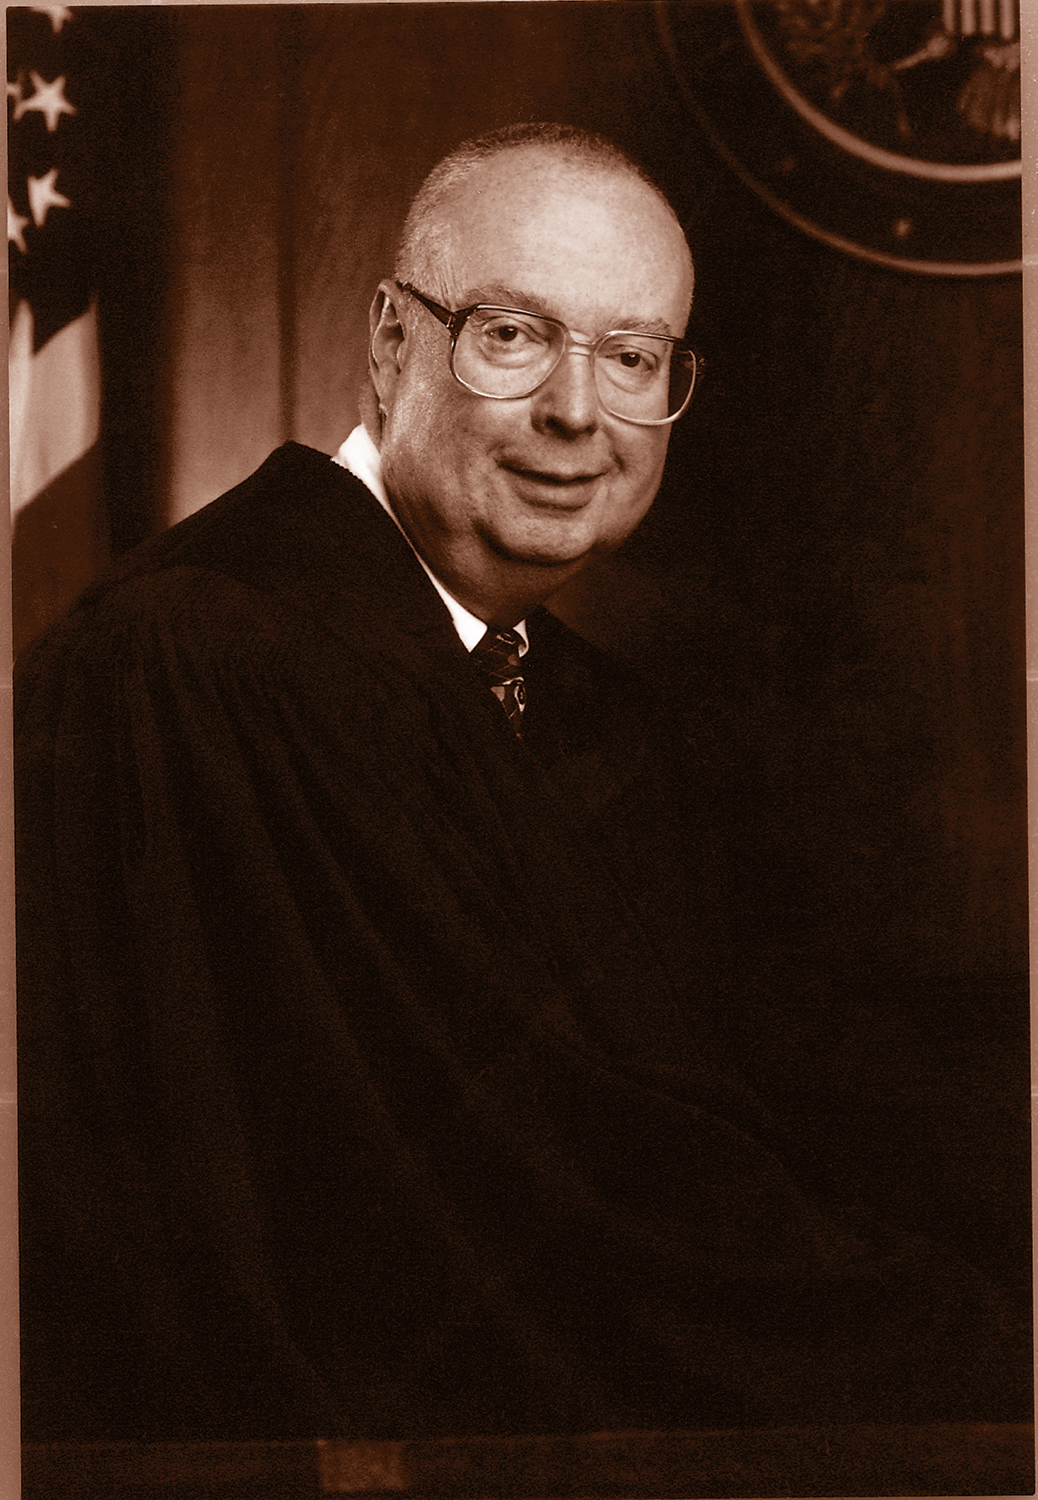 Judge Dale A. Kimball